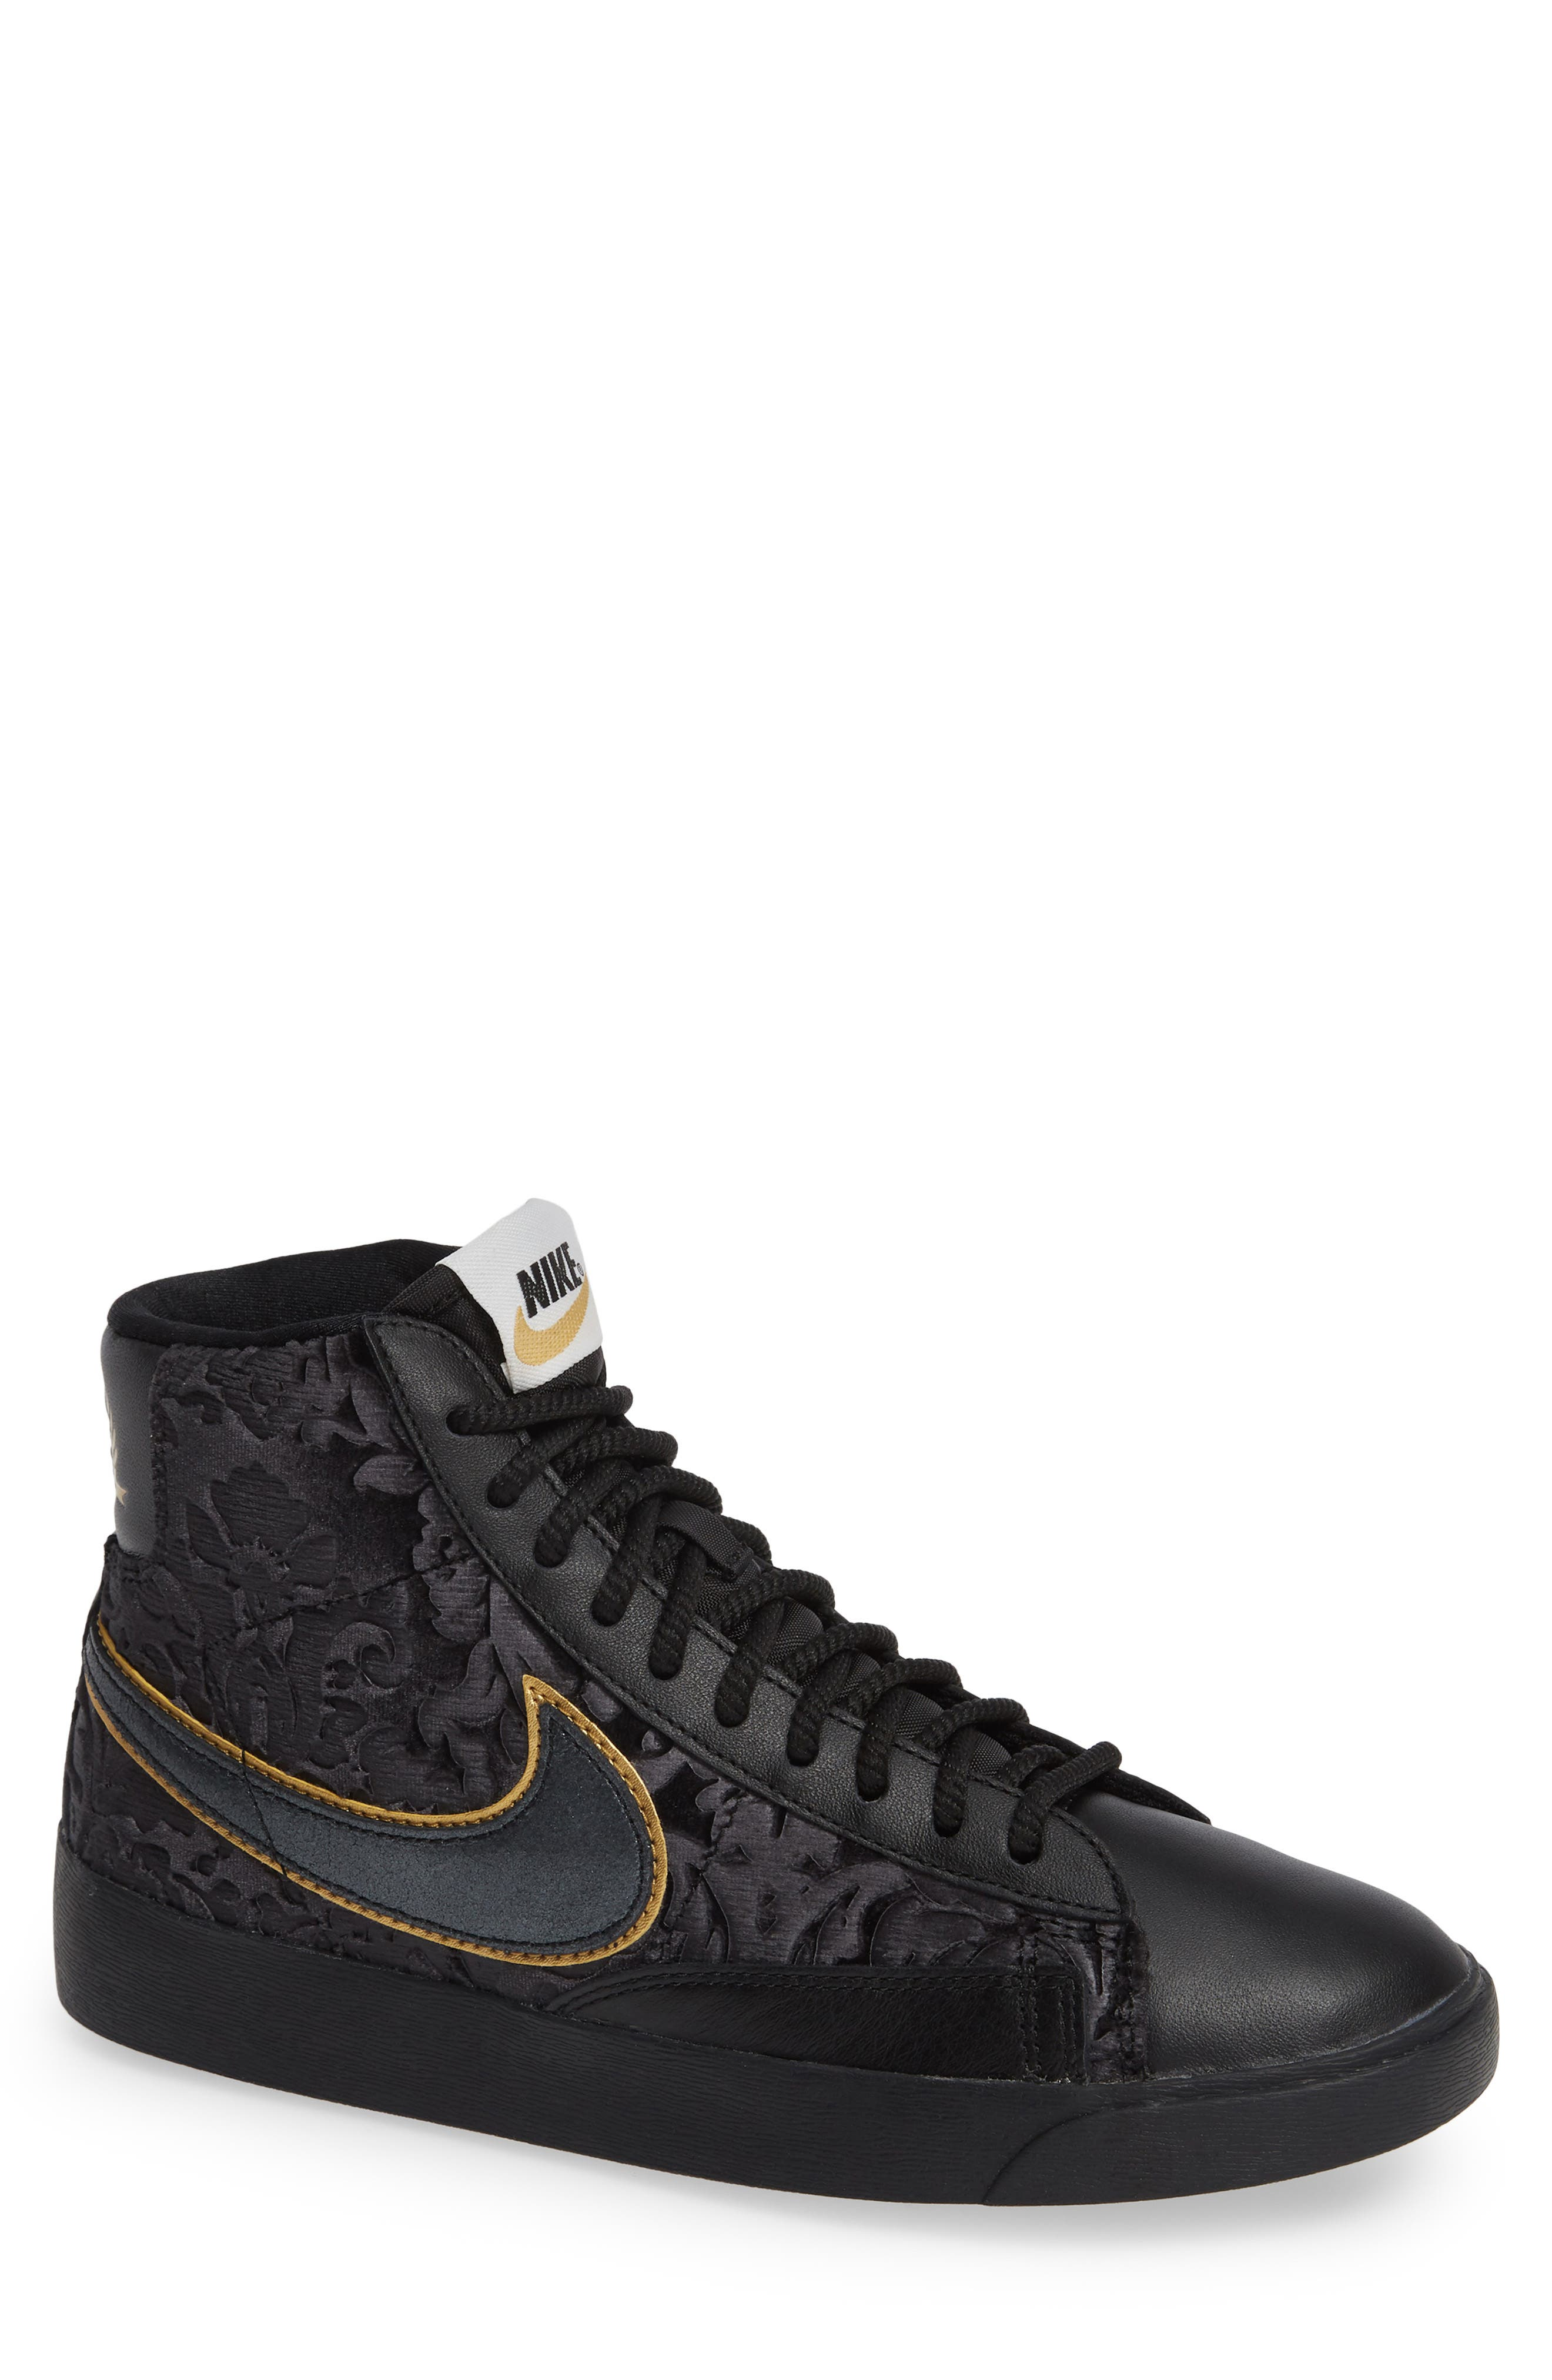 Blazer Mid Top Sneaker,                         Main,                         color, BLACK/ GOLD/ SUMMIT WHITE